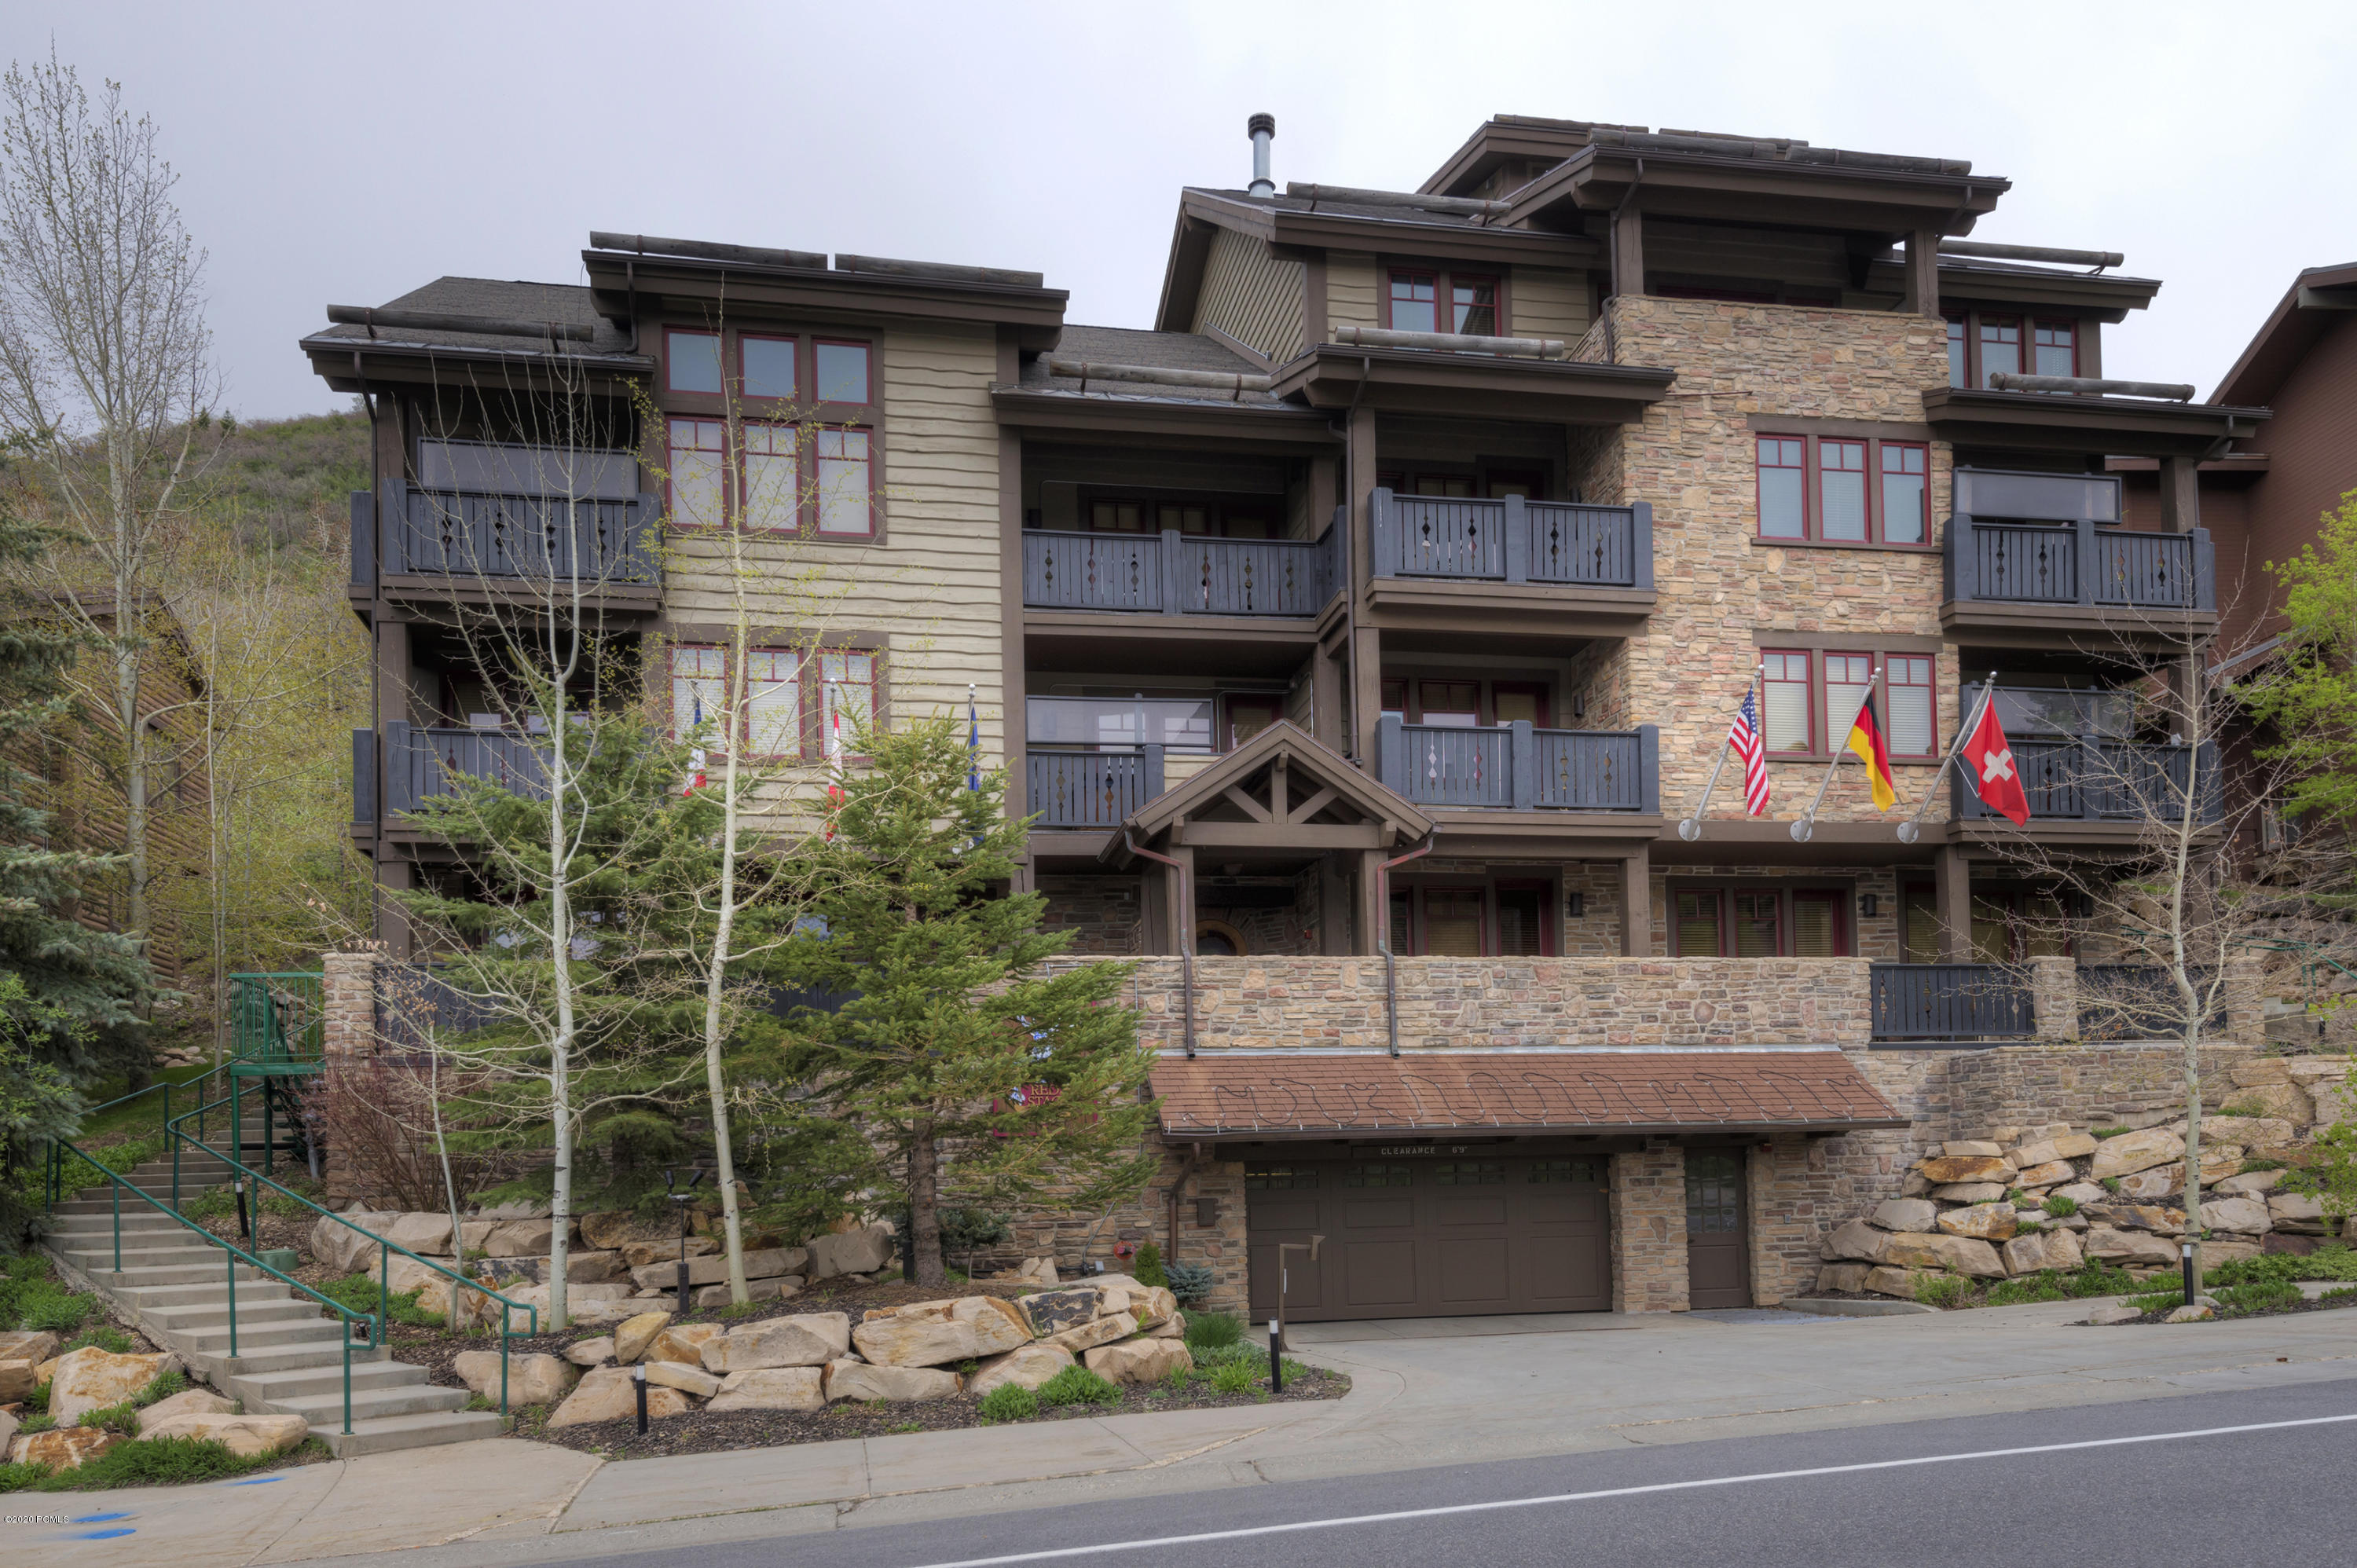 2550 Deer Valley Drive, Park City, Utah 84060, 1 Bedroom Bedrooms, ,2 BathroomsBathrooms,Condominium,For Sale,Deer Valley,20190109112430415765000000